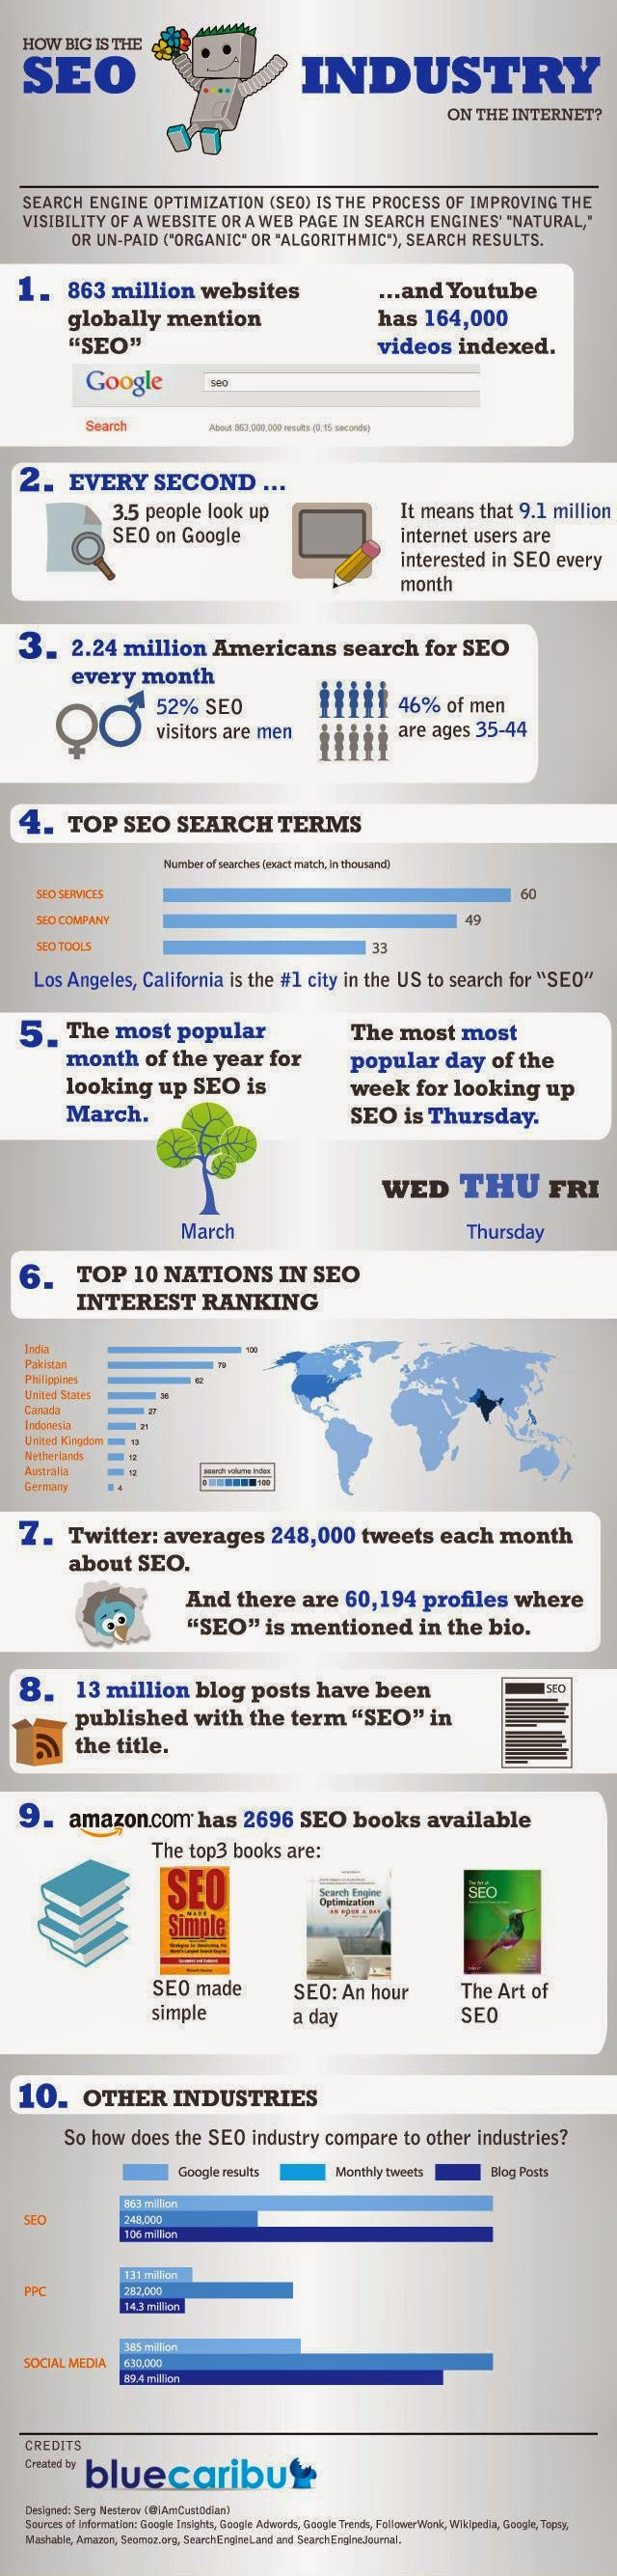 SEO Industry On The Internet